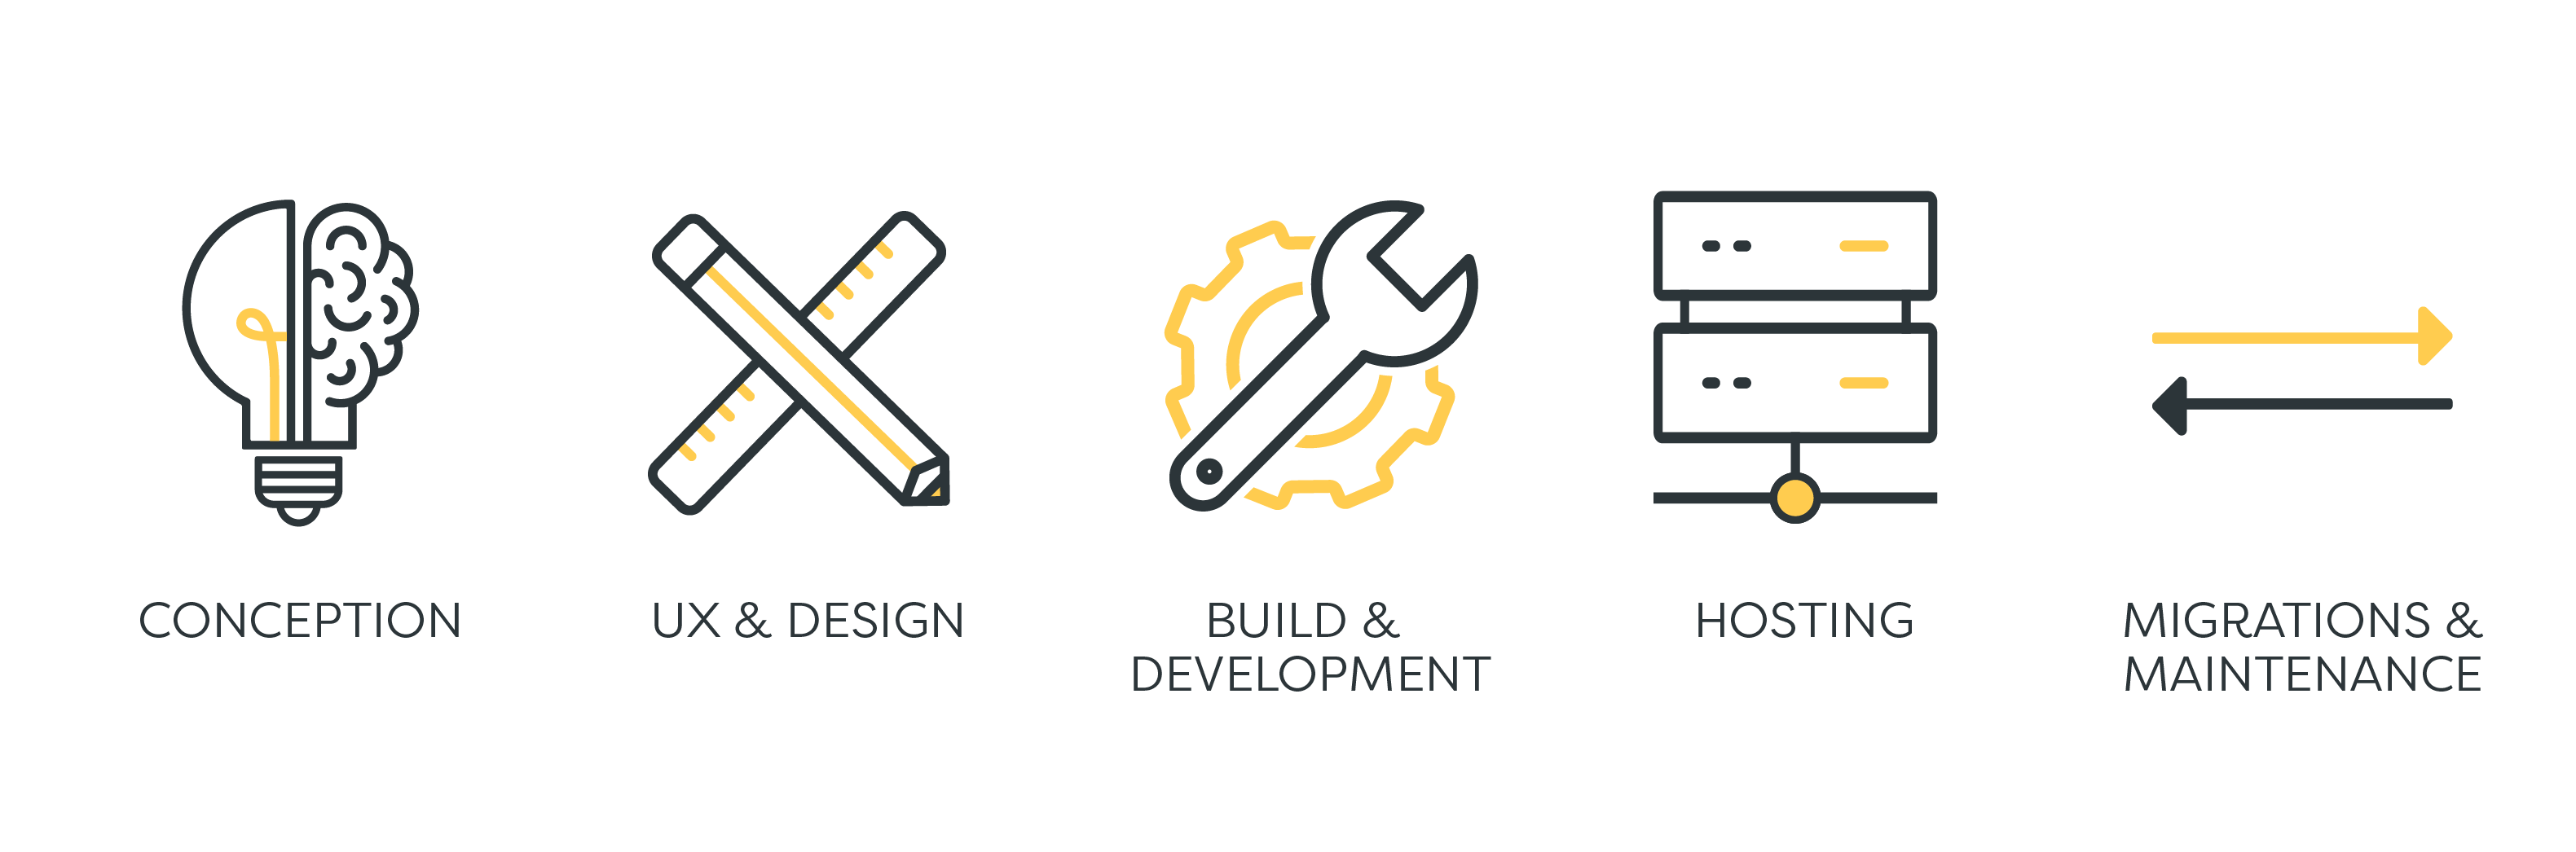 Image of Amazee Labs End-to-end development needs. Conception, UX and Design, Build and Development, Hosting, and Migration and Maintenance.